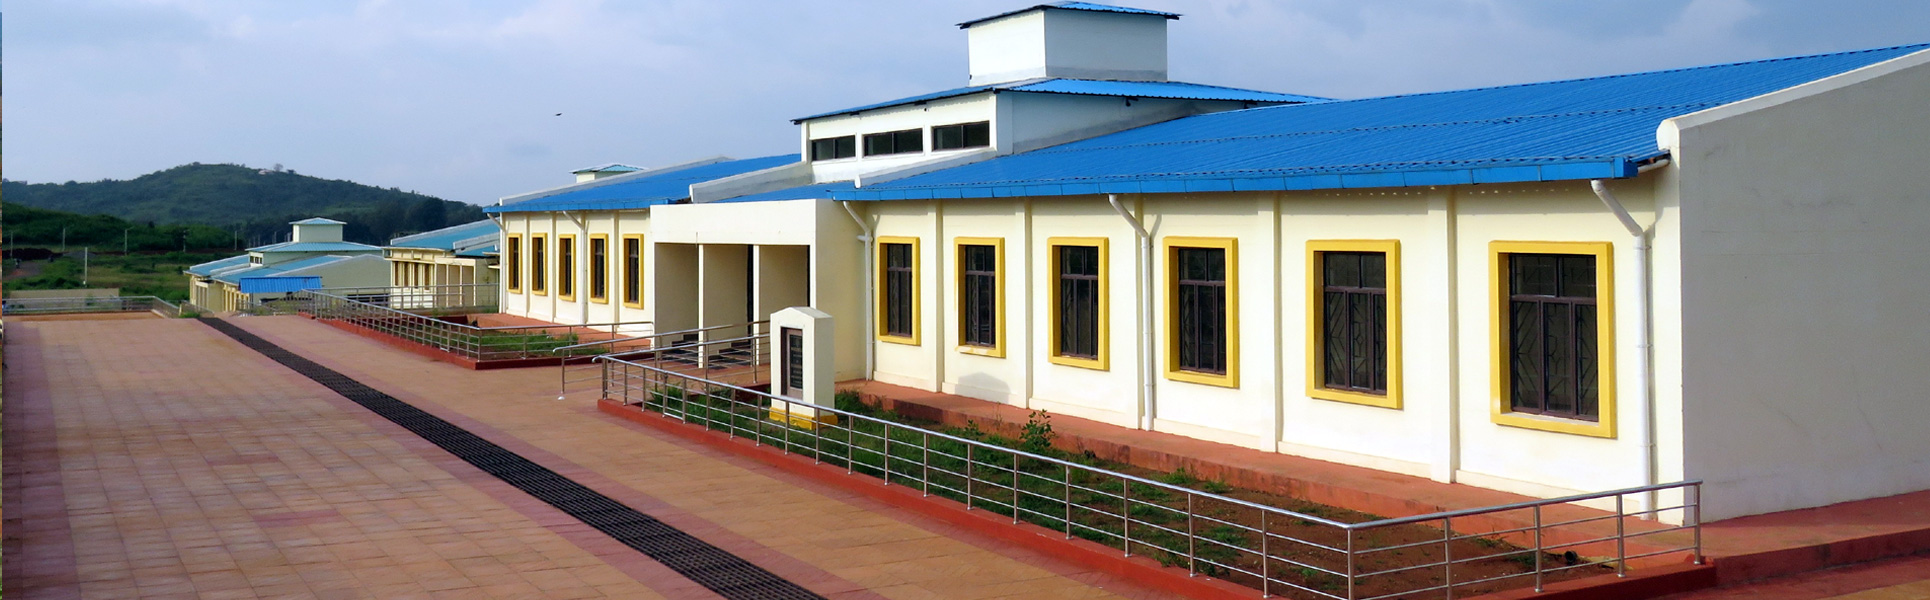 Central University of Odisha, Academic Block